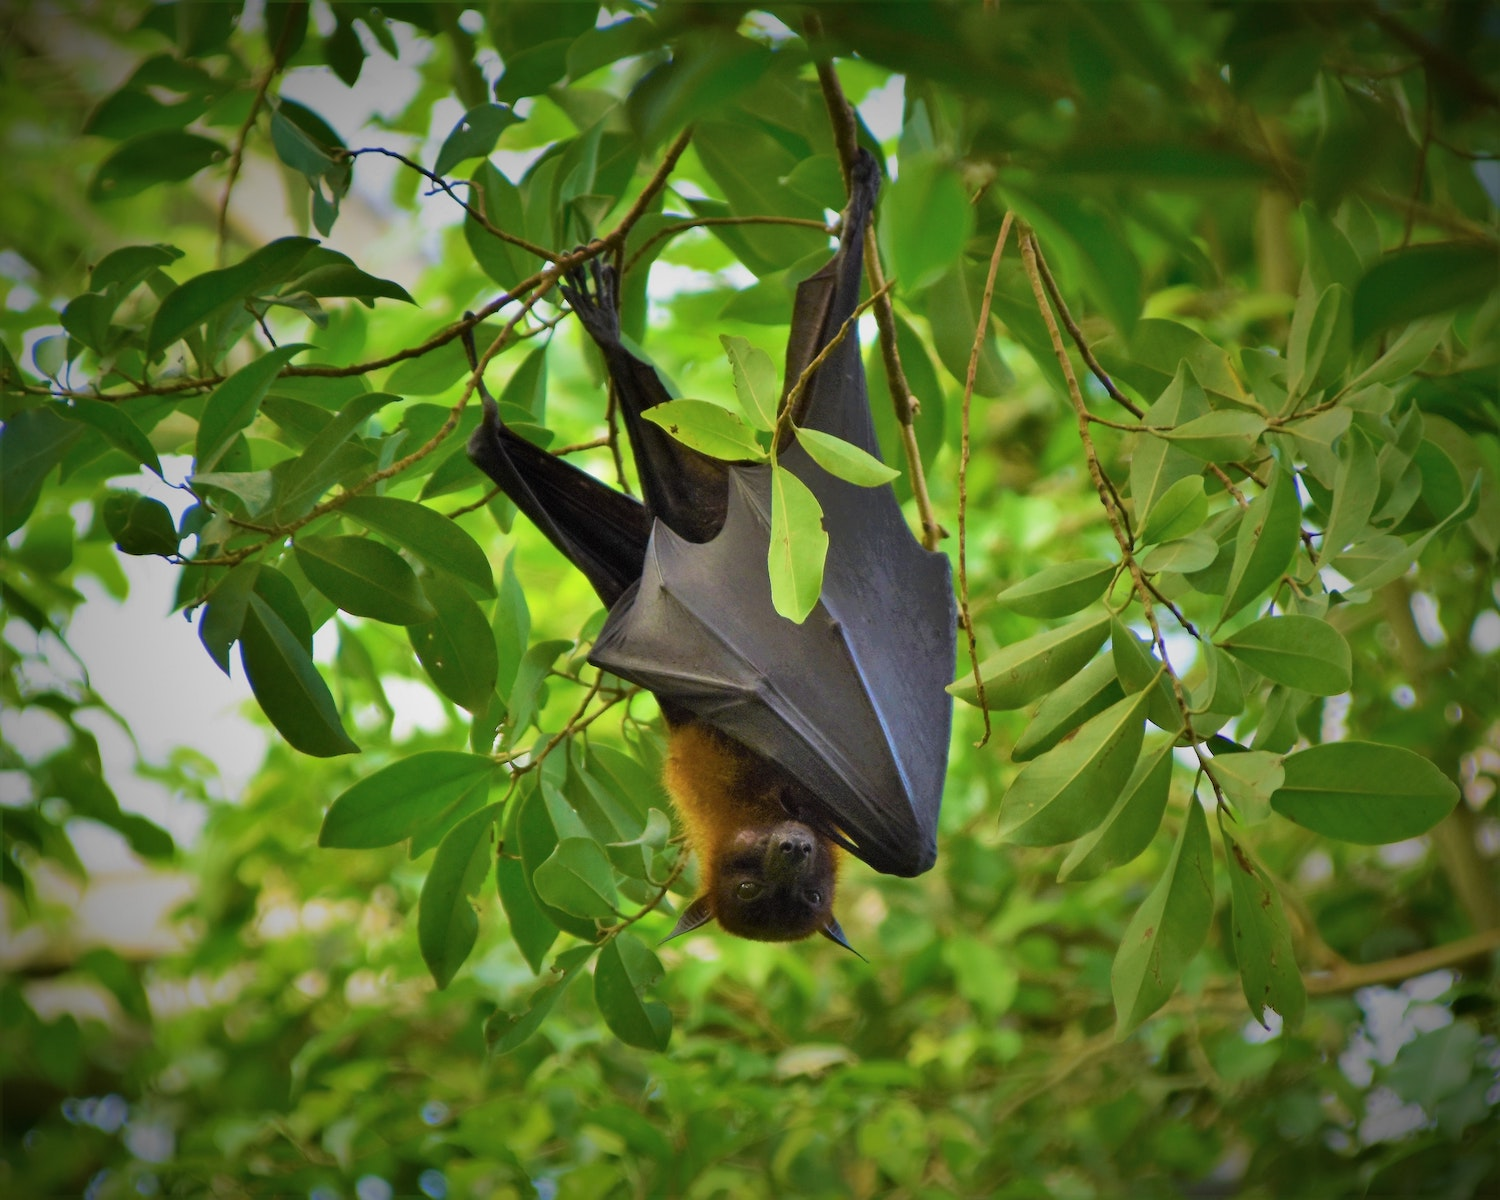 Bat hanging upside down from tree